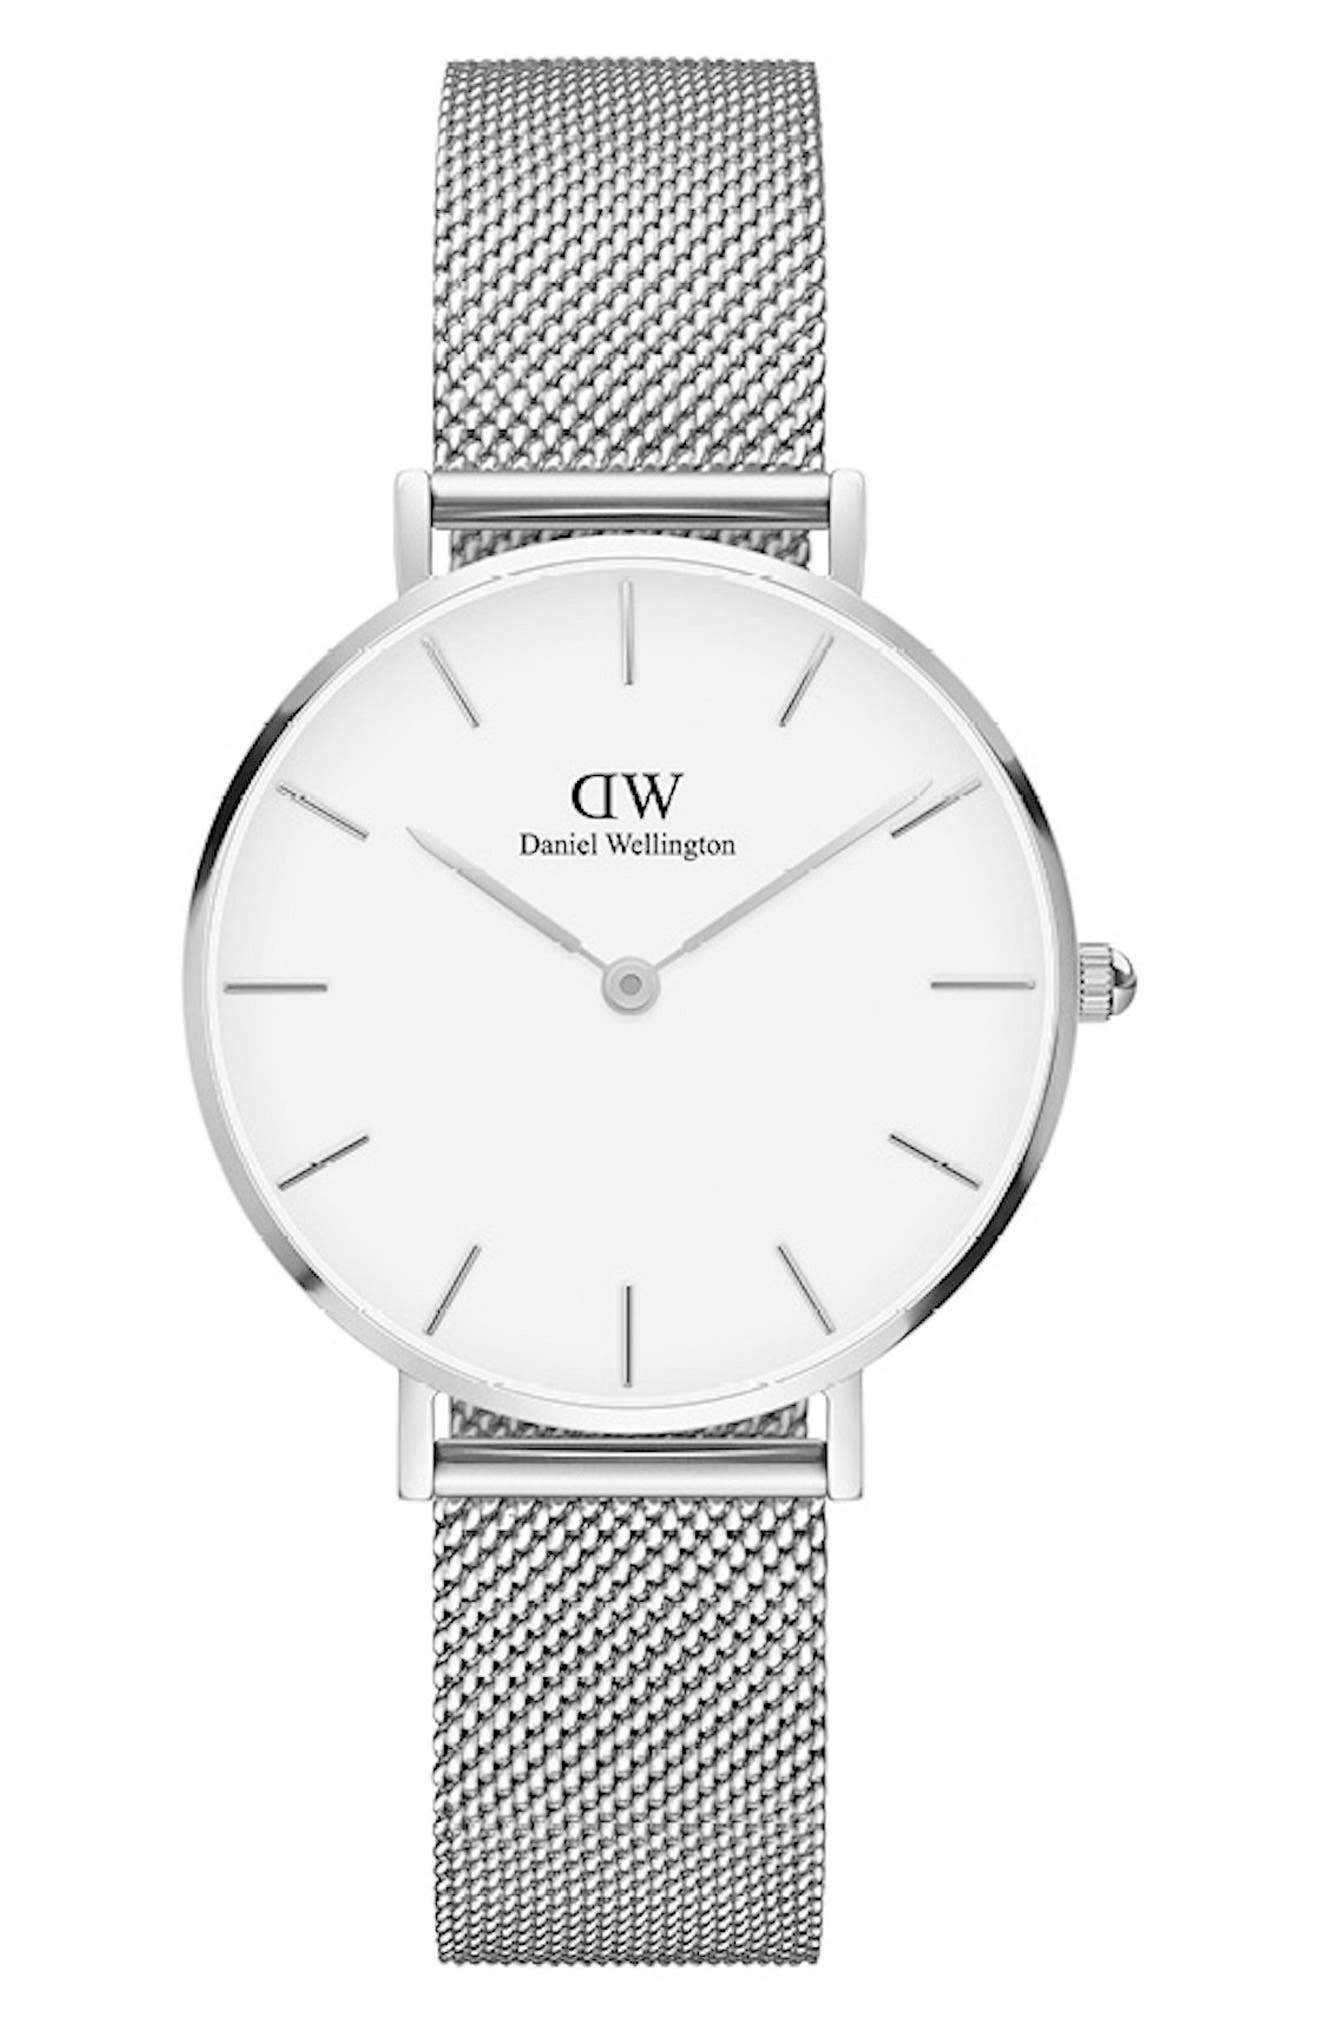 32Mm Classic Petite Melrose Bracelet Watch W/White Dial in Silver